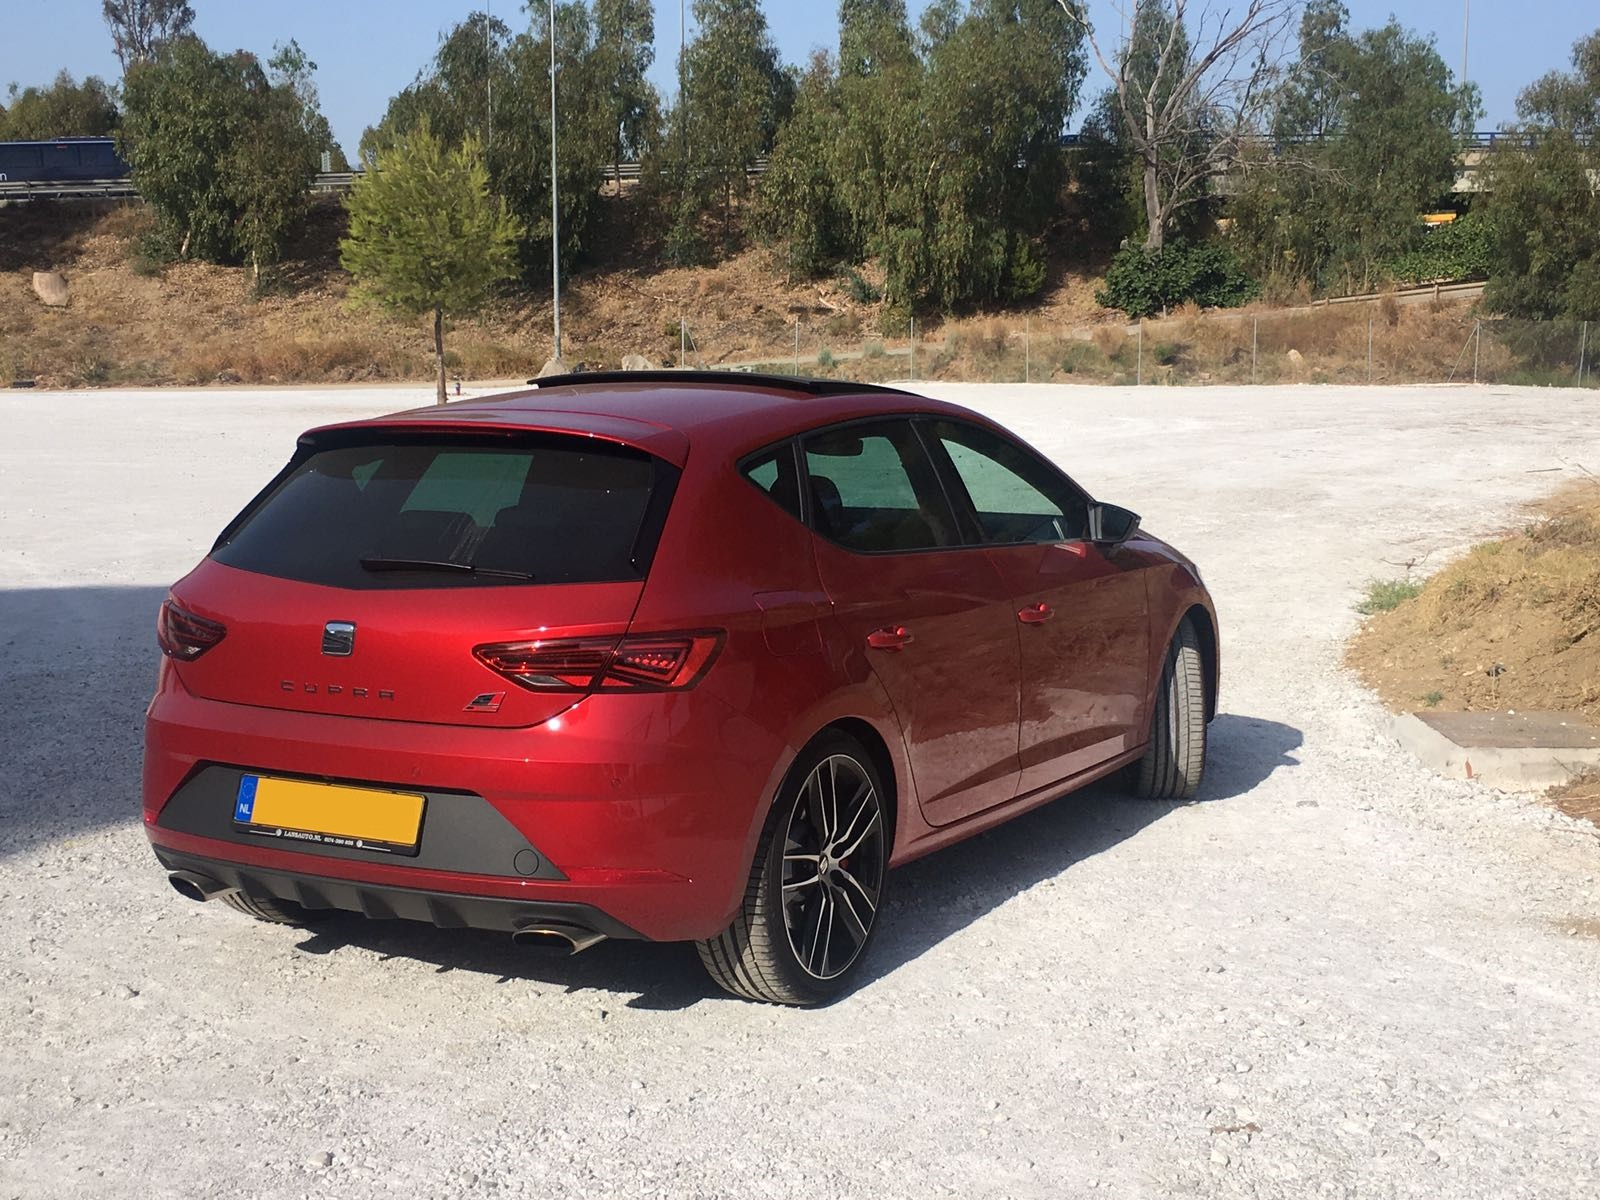 getuned seat leon cupra 300 tdsl tuning. Black Bedroom Furniture Sets. Home Design Ideas